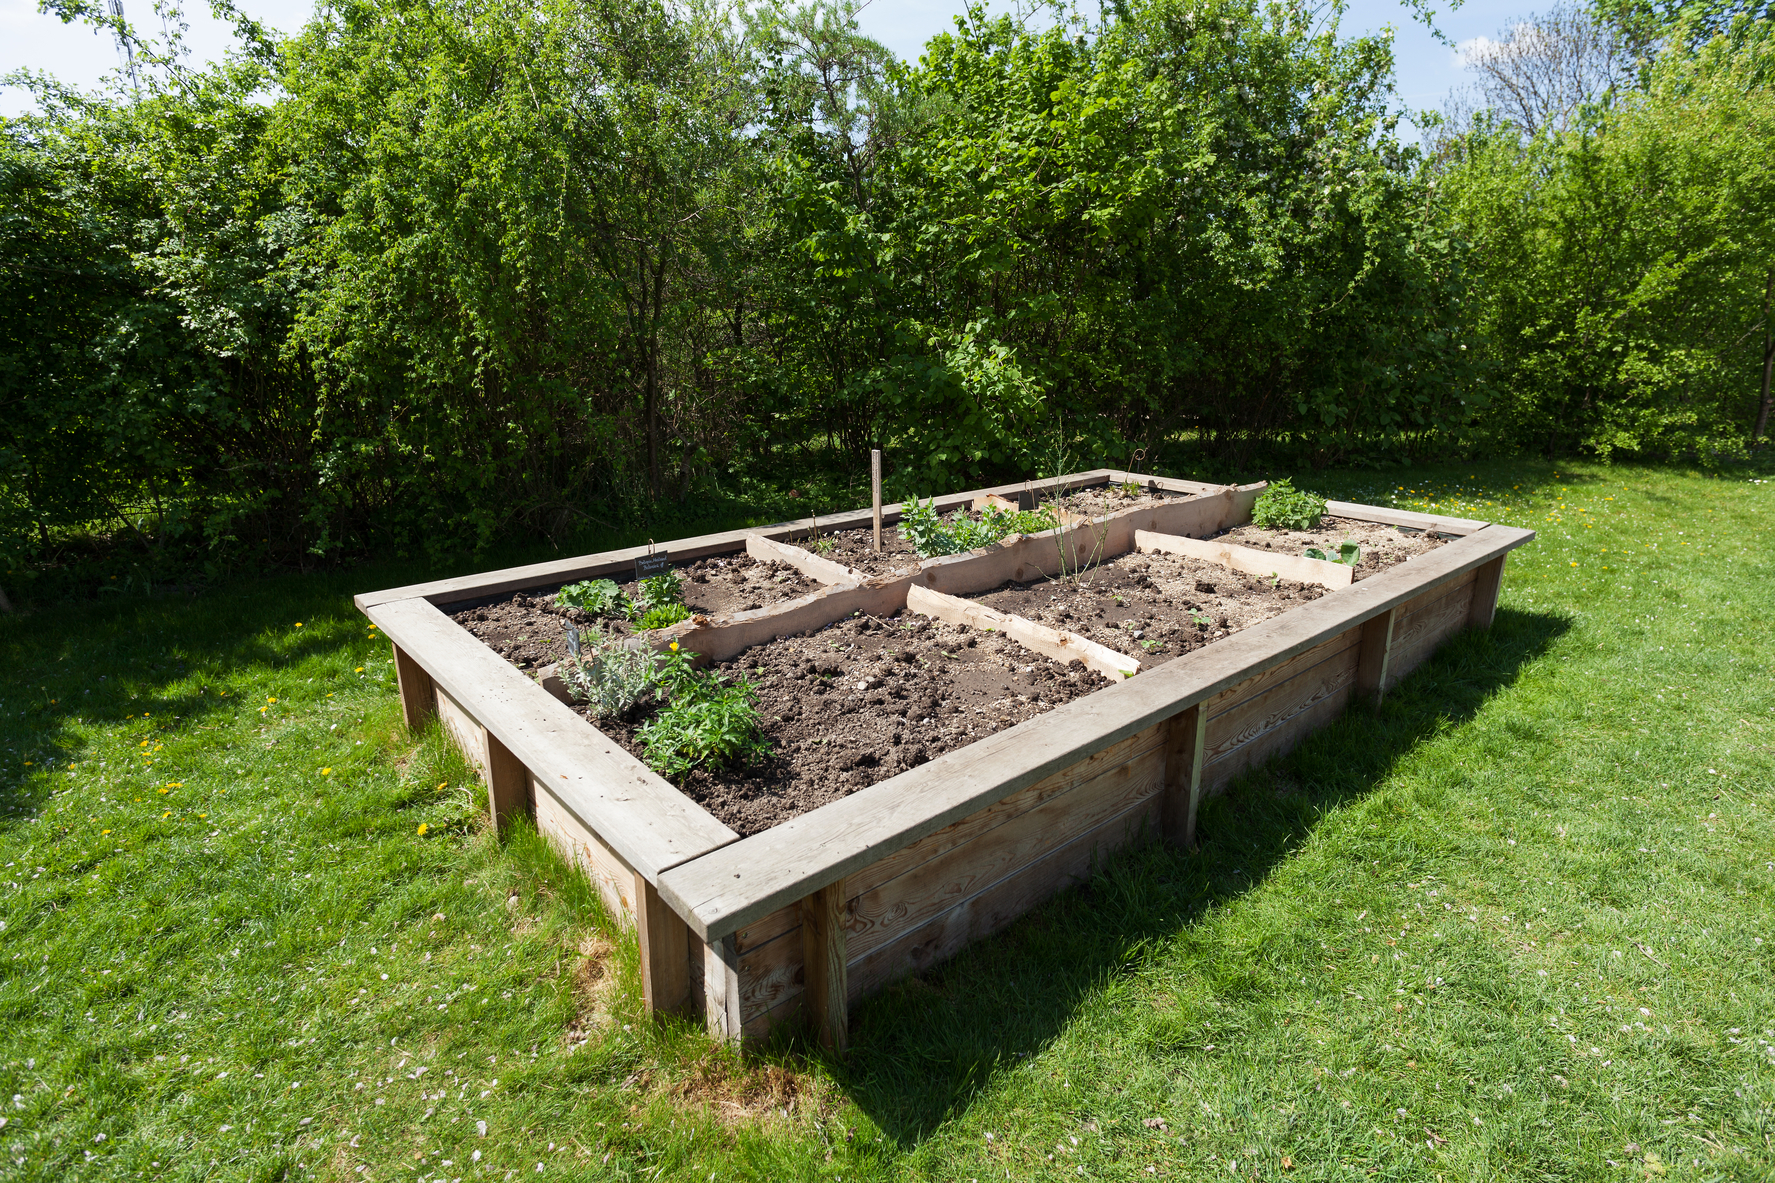 How to Build Raised Garden Beds Raised Bed Gardening The Old